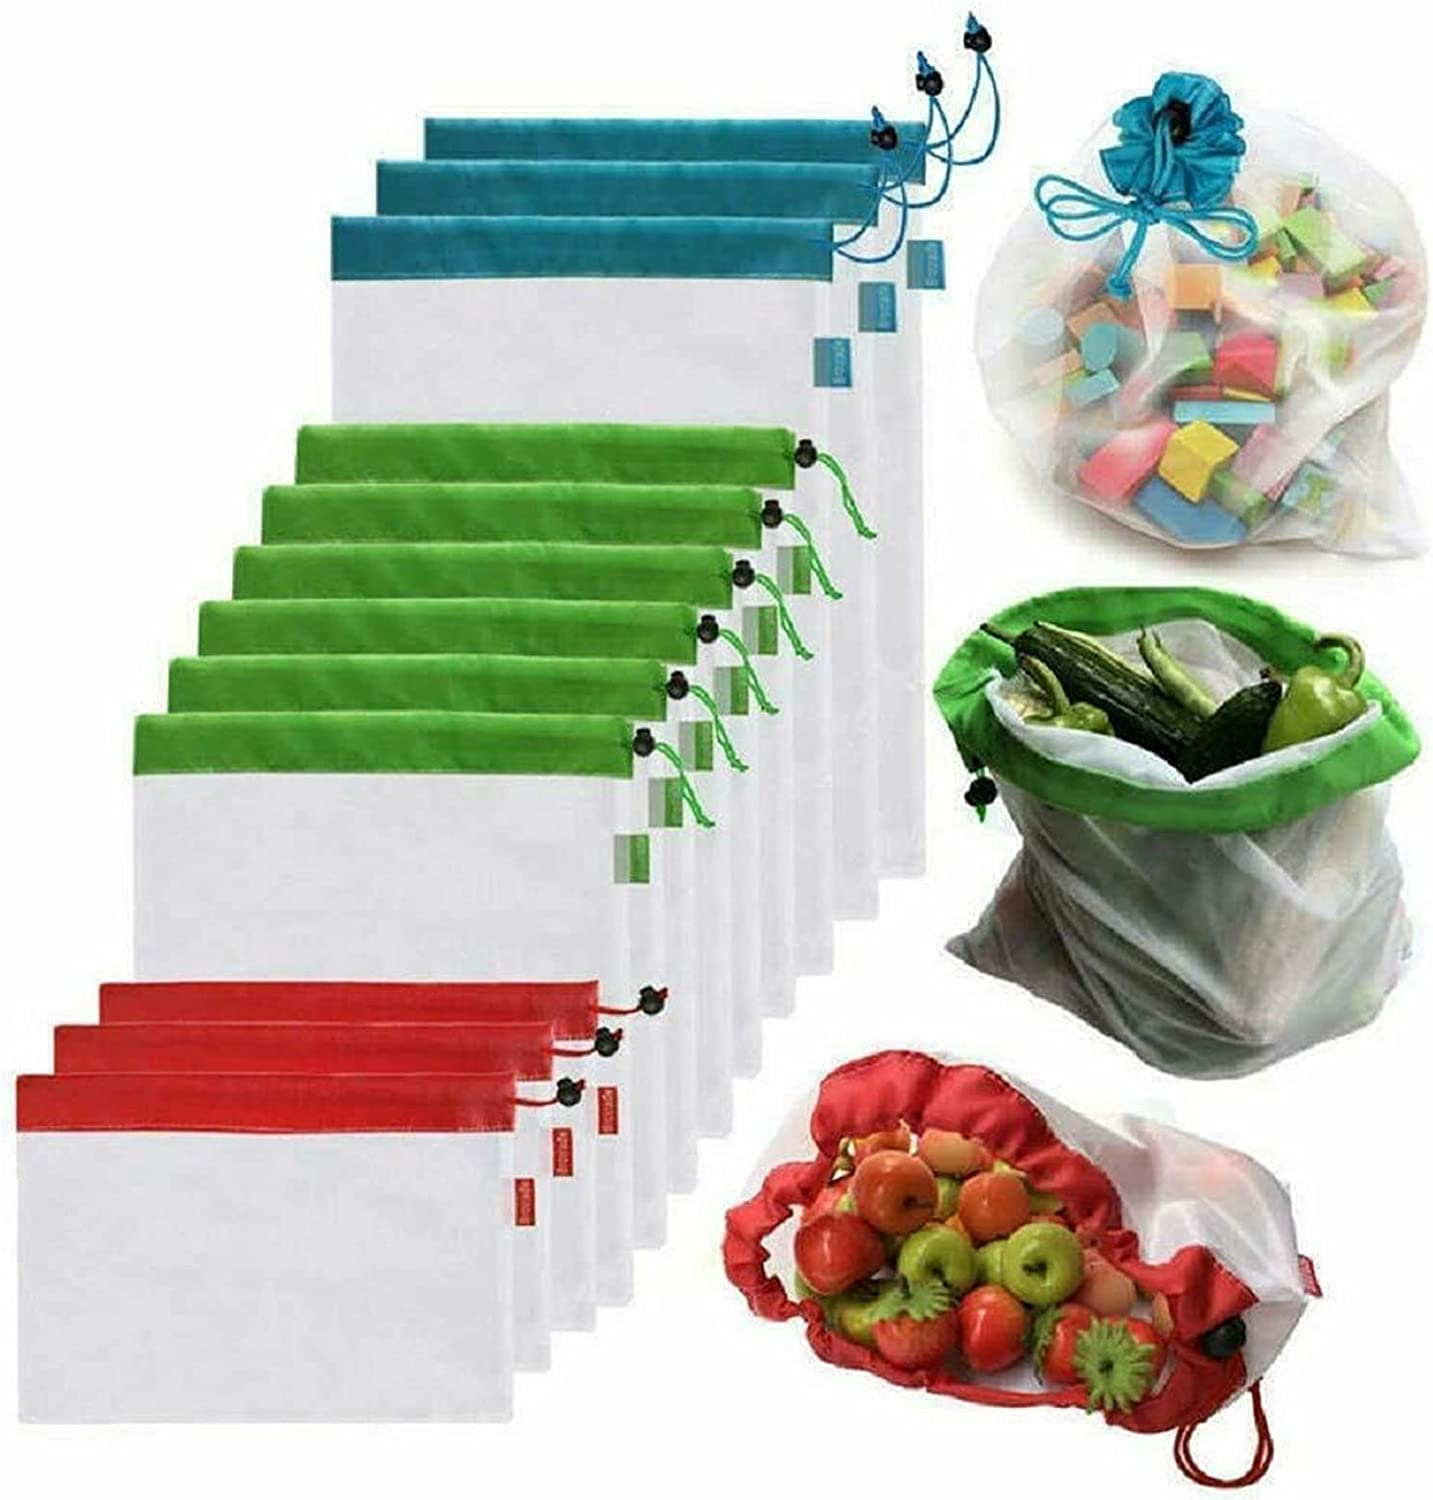 Mesh Bags Premium Net Eco-Friendly and Our shop Clearance SALE! Limited time! OFFers the best service Fruit Drawstring Veg